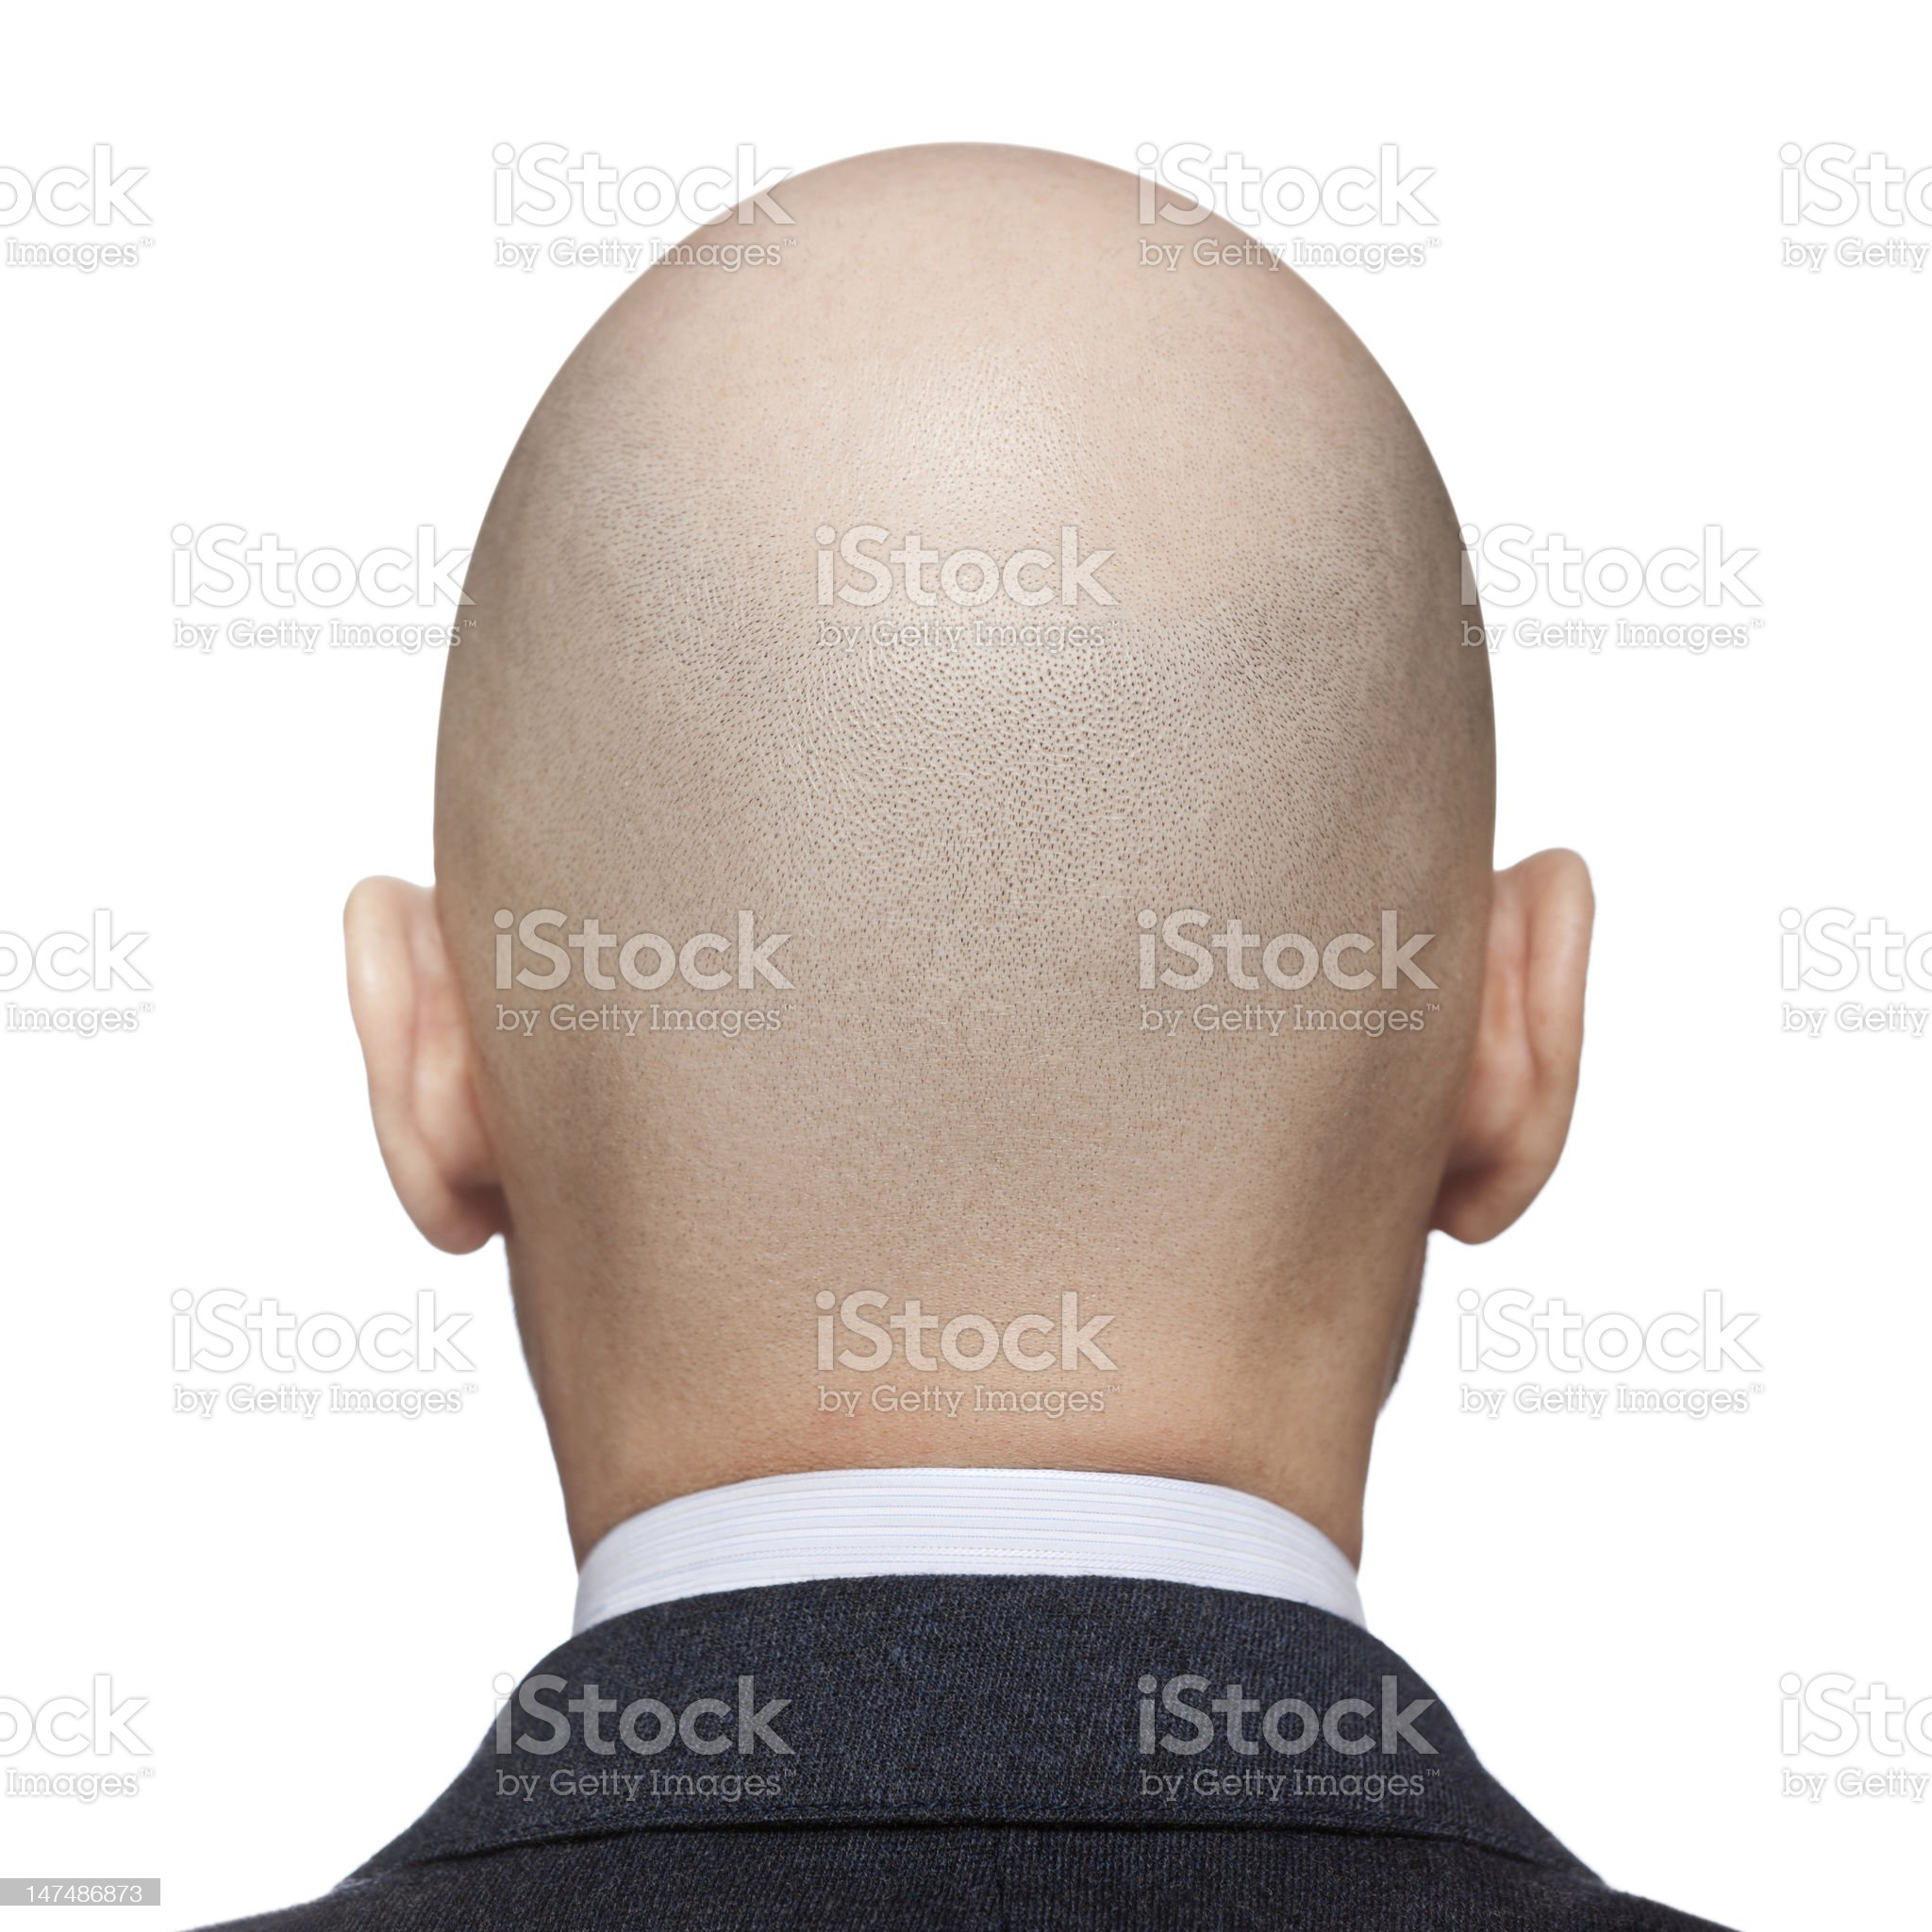 A rear view of a mans bald head royalty-free stock photo